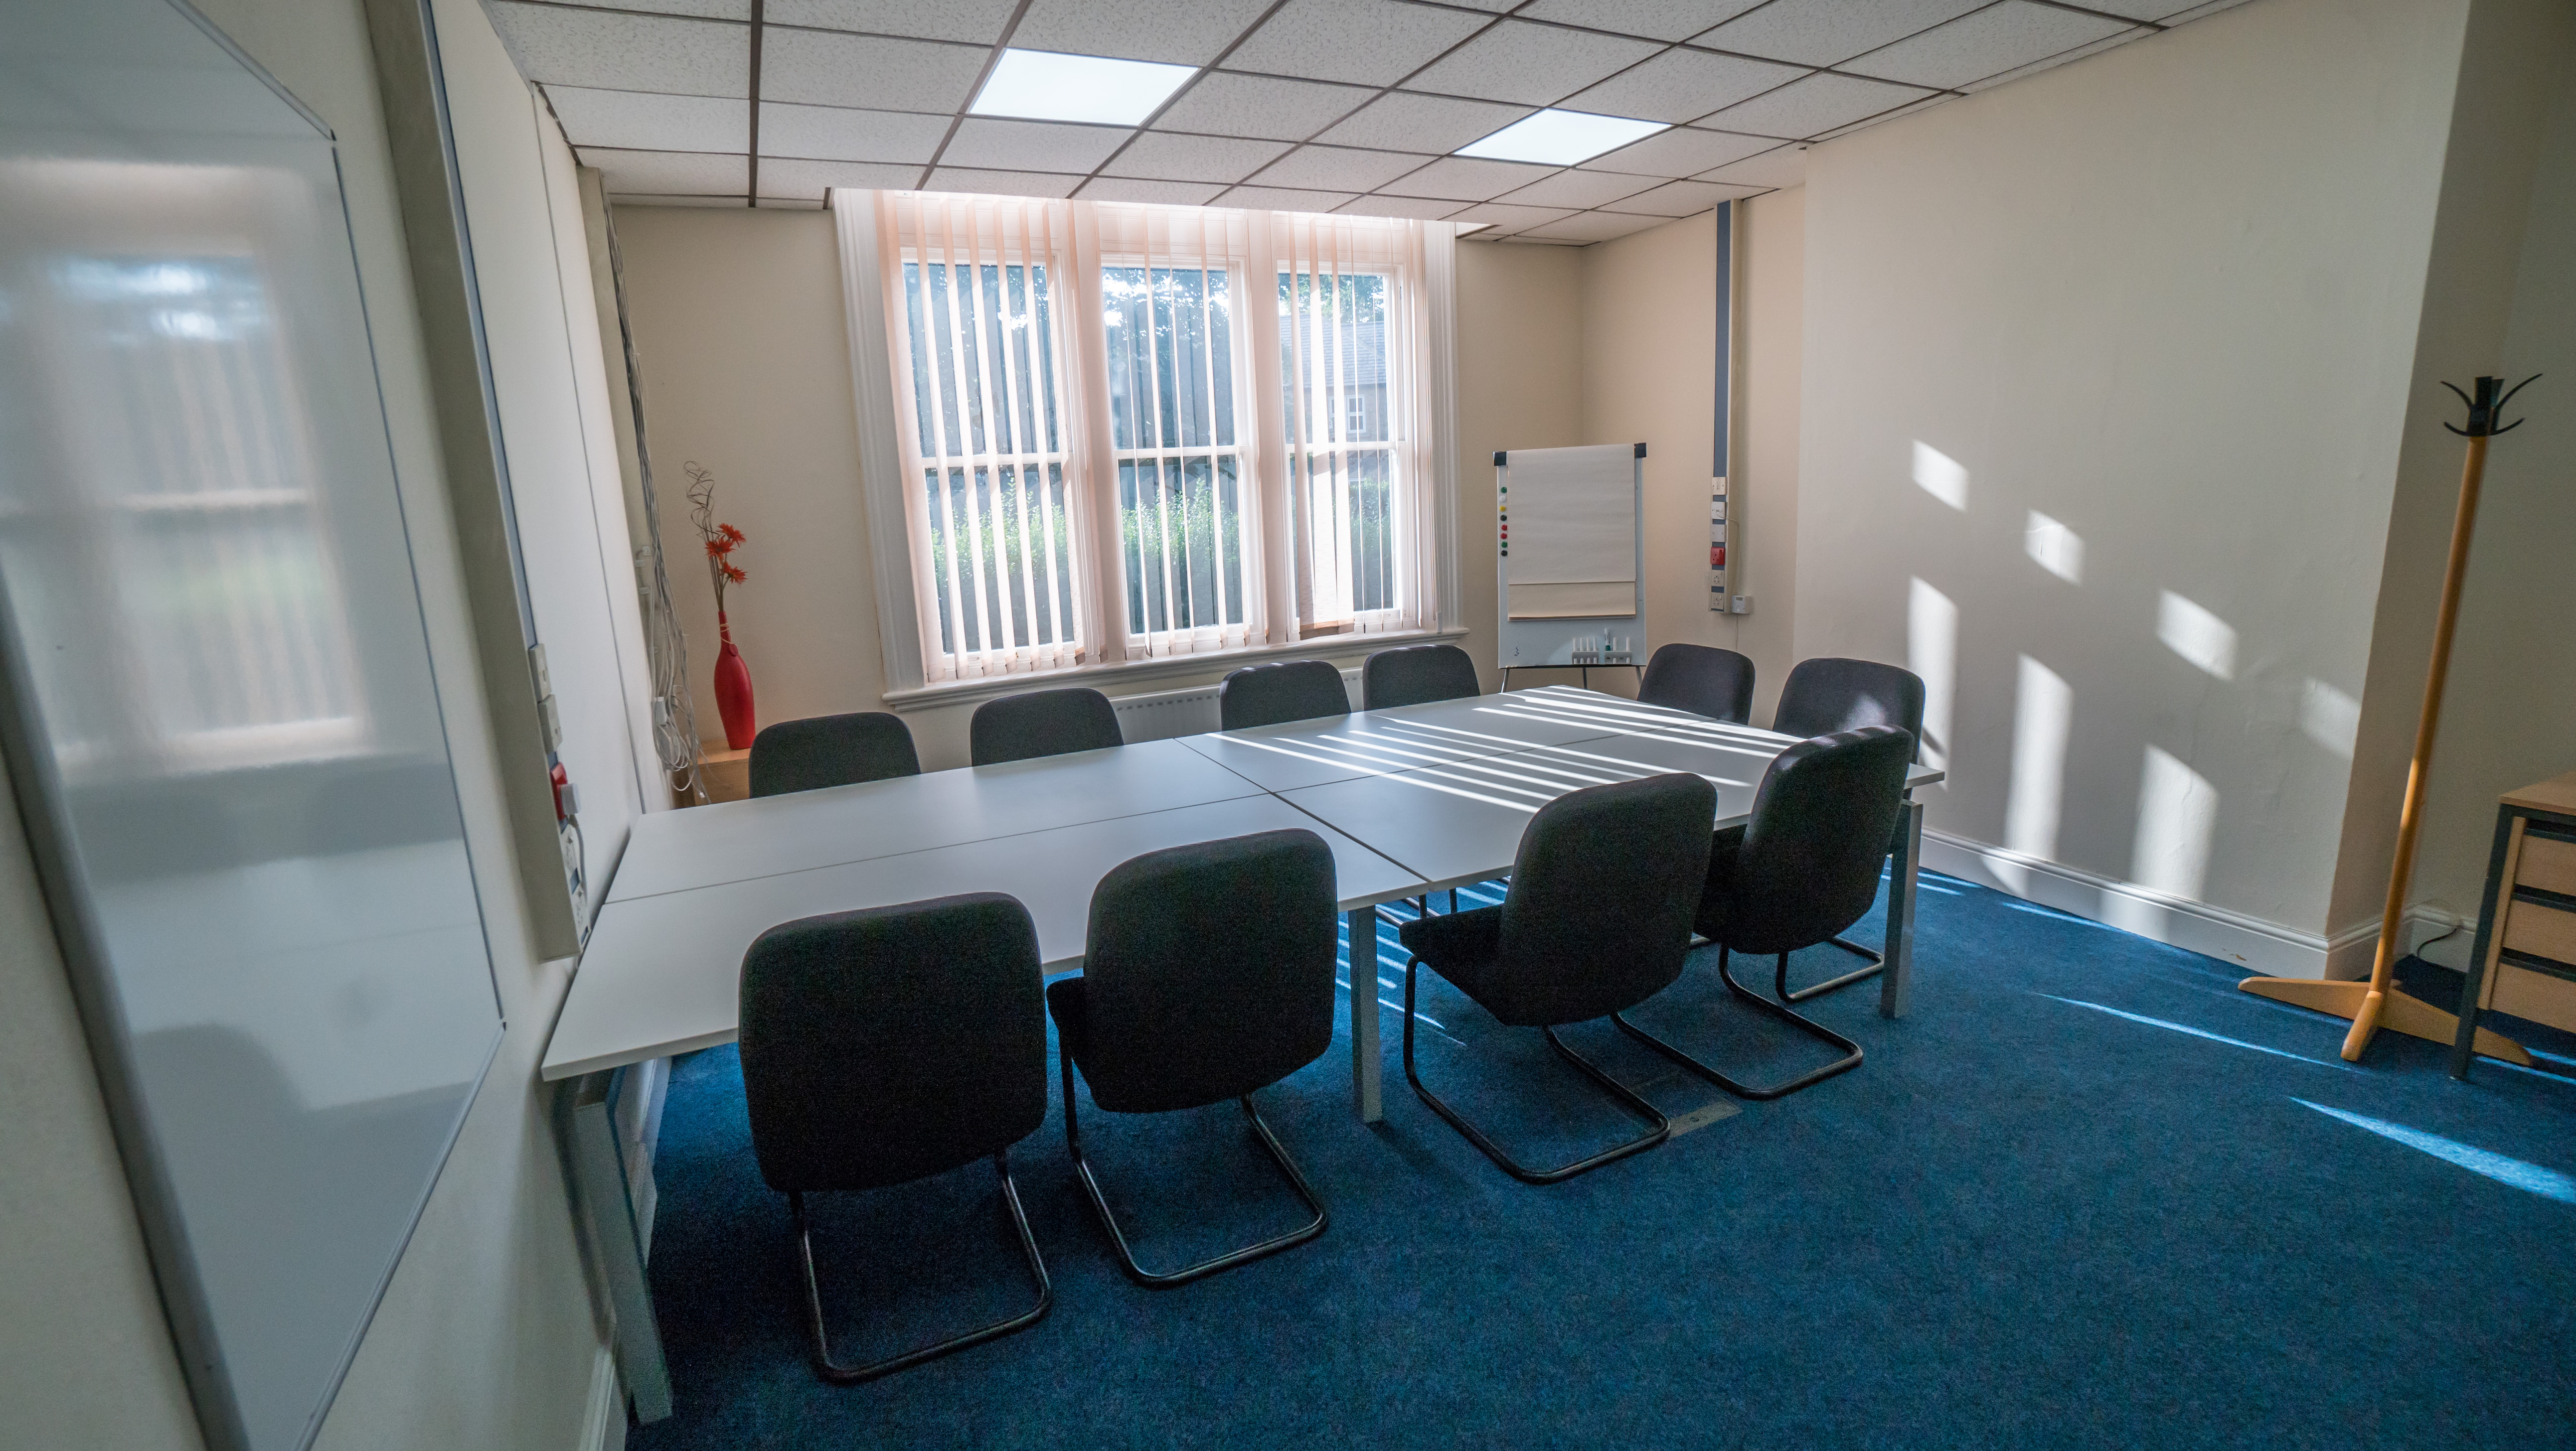 Fishergate Suite York Meeting Room Hire at Tower House